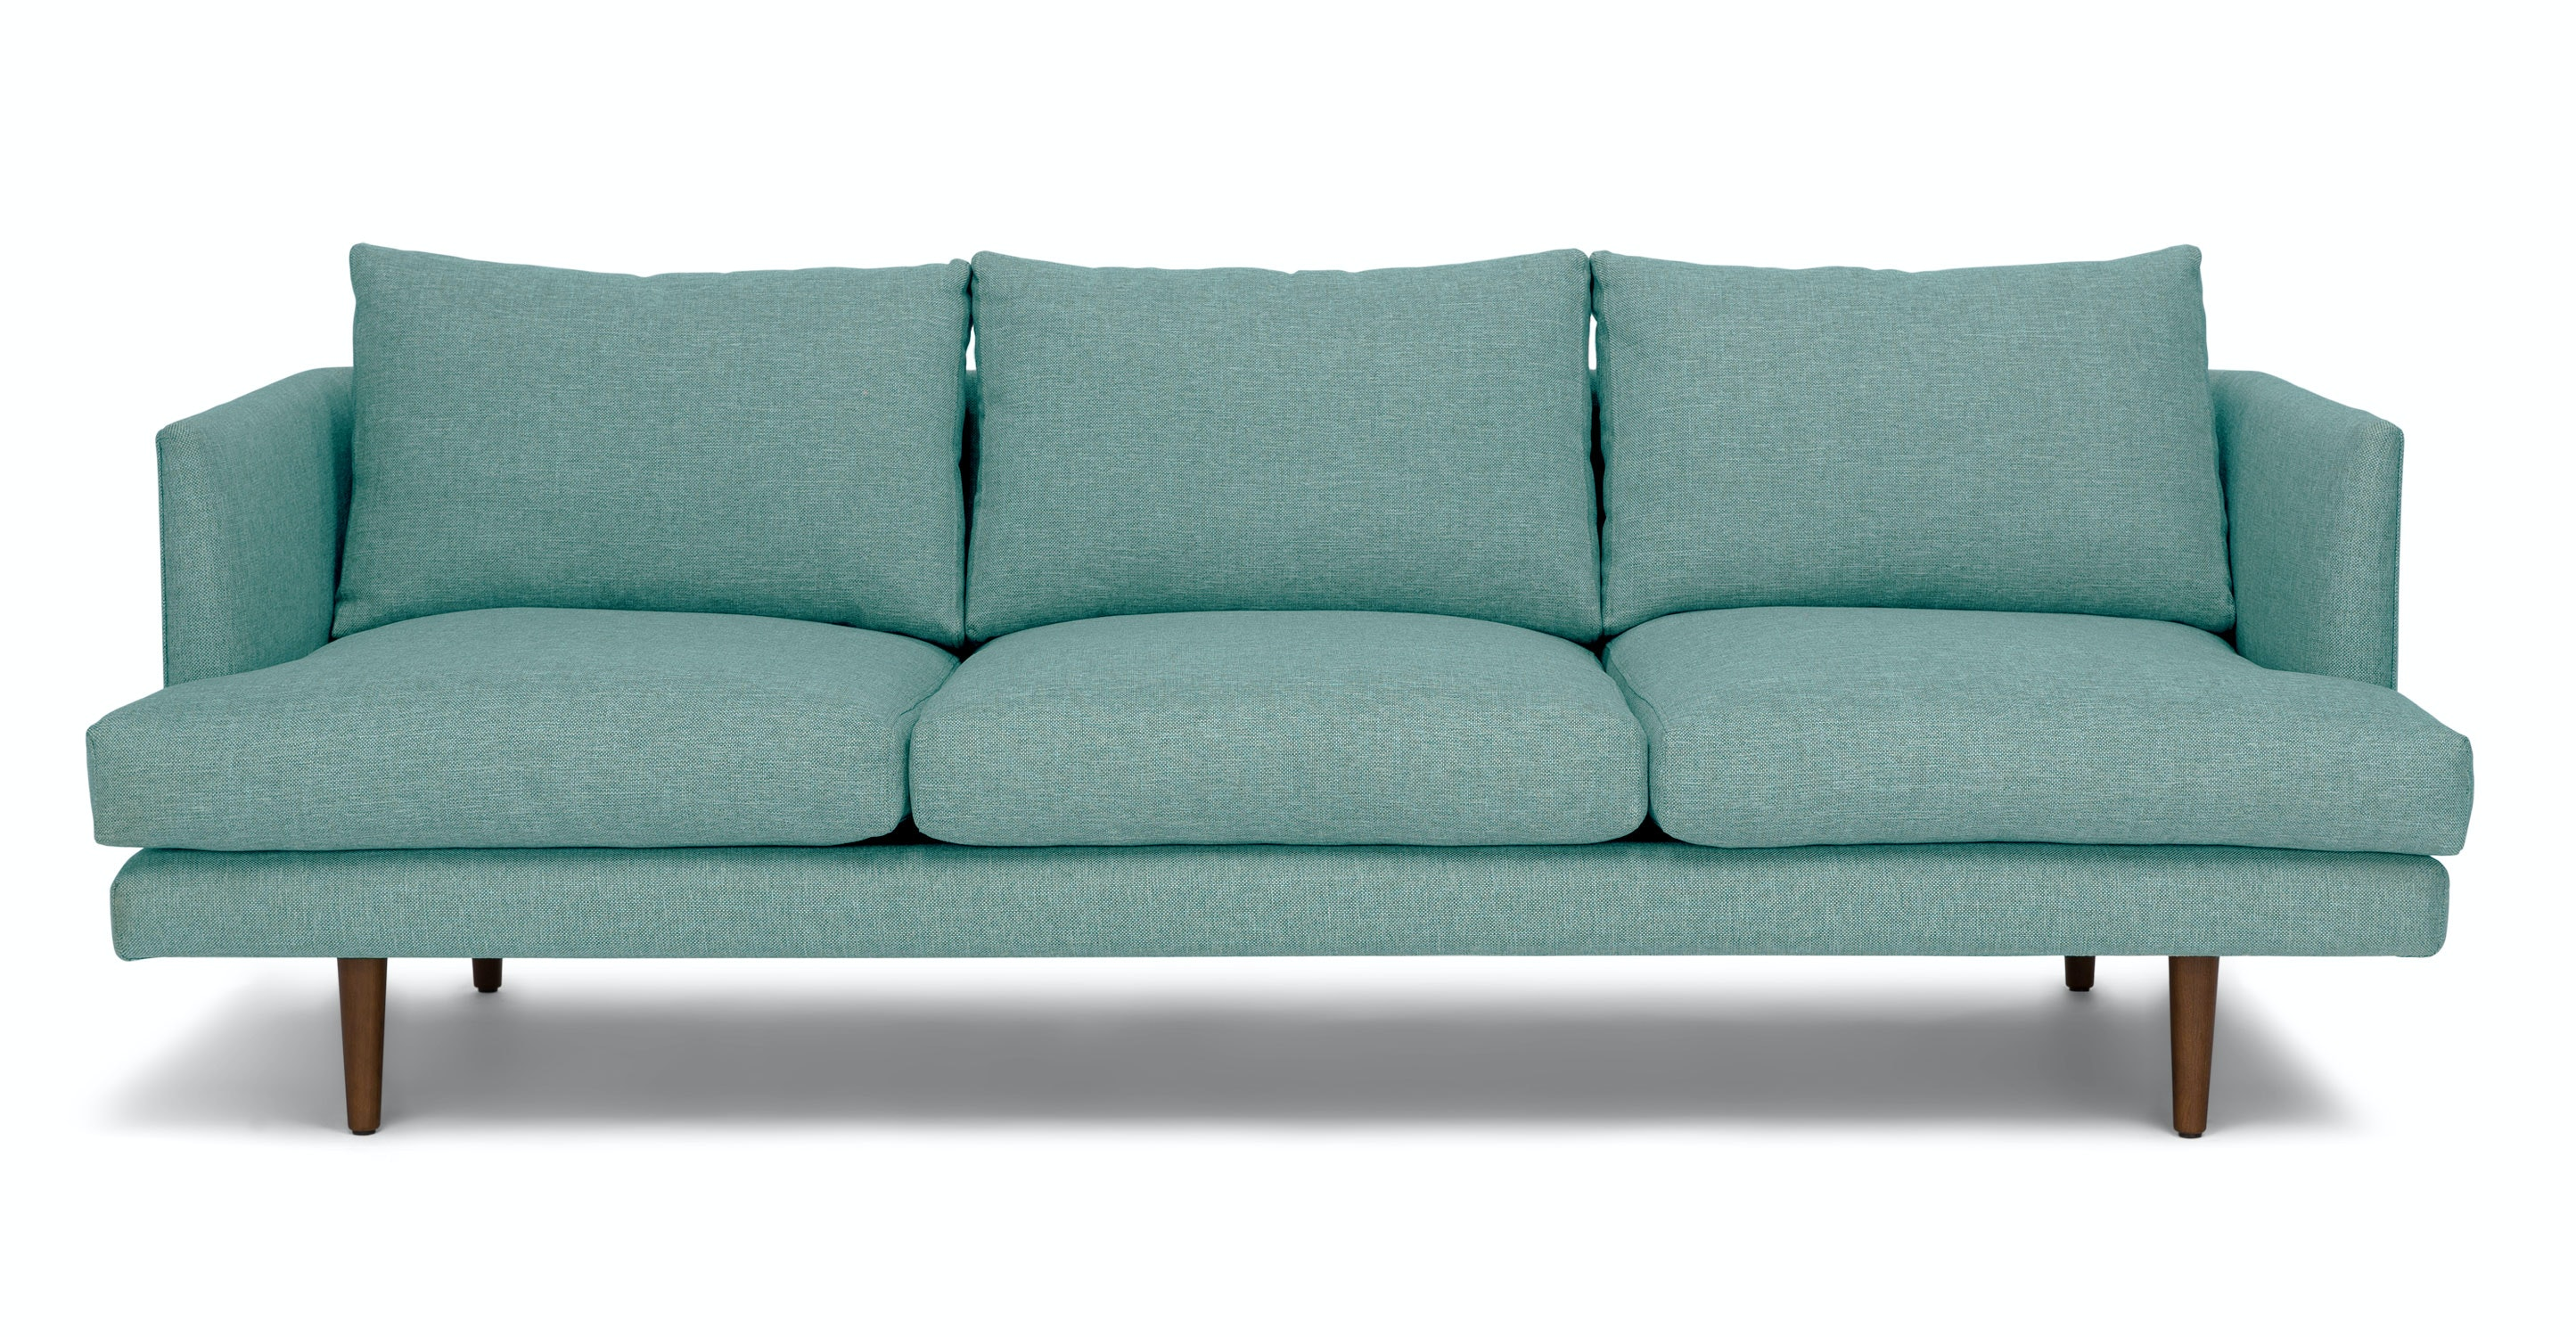 Teal couches for sale 28 images angelo home alden for Blue couches for sale